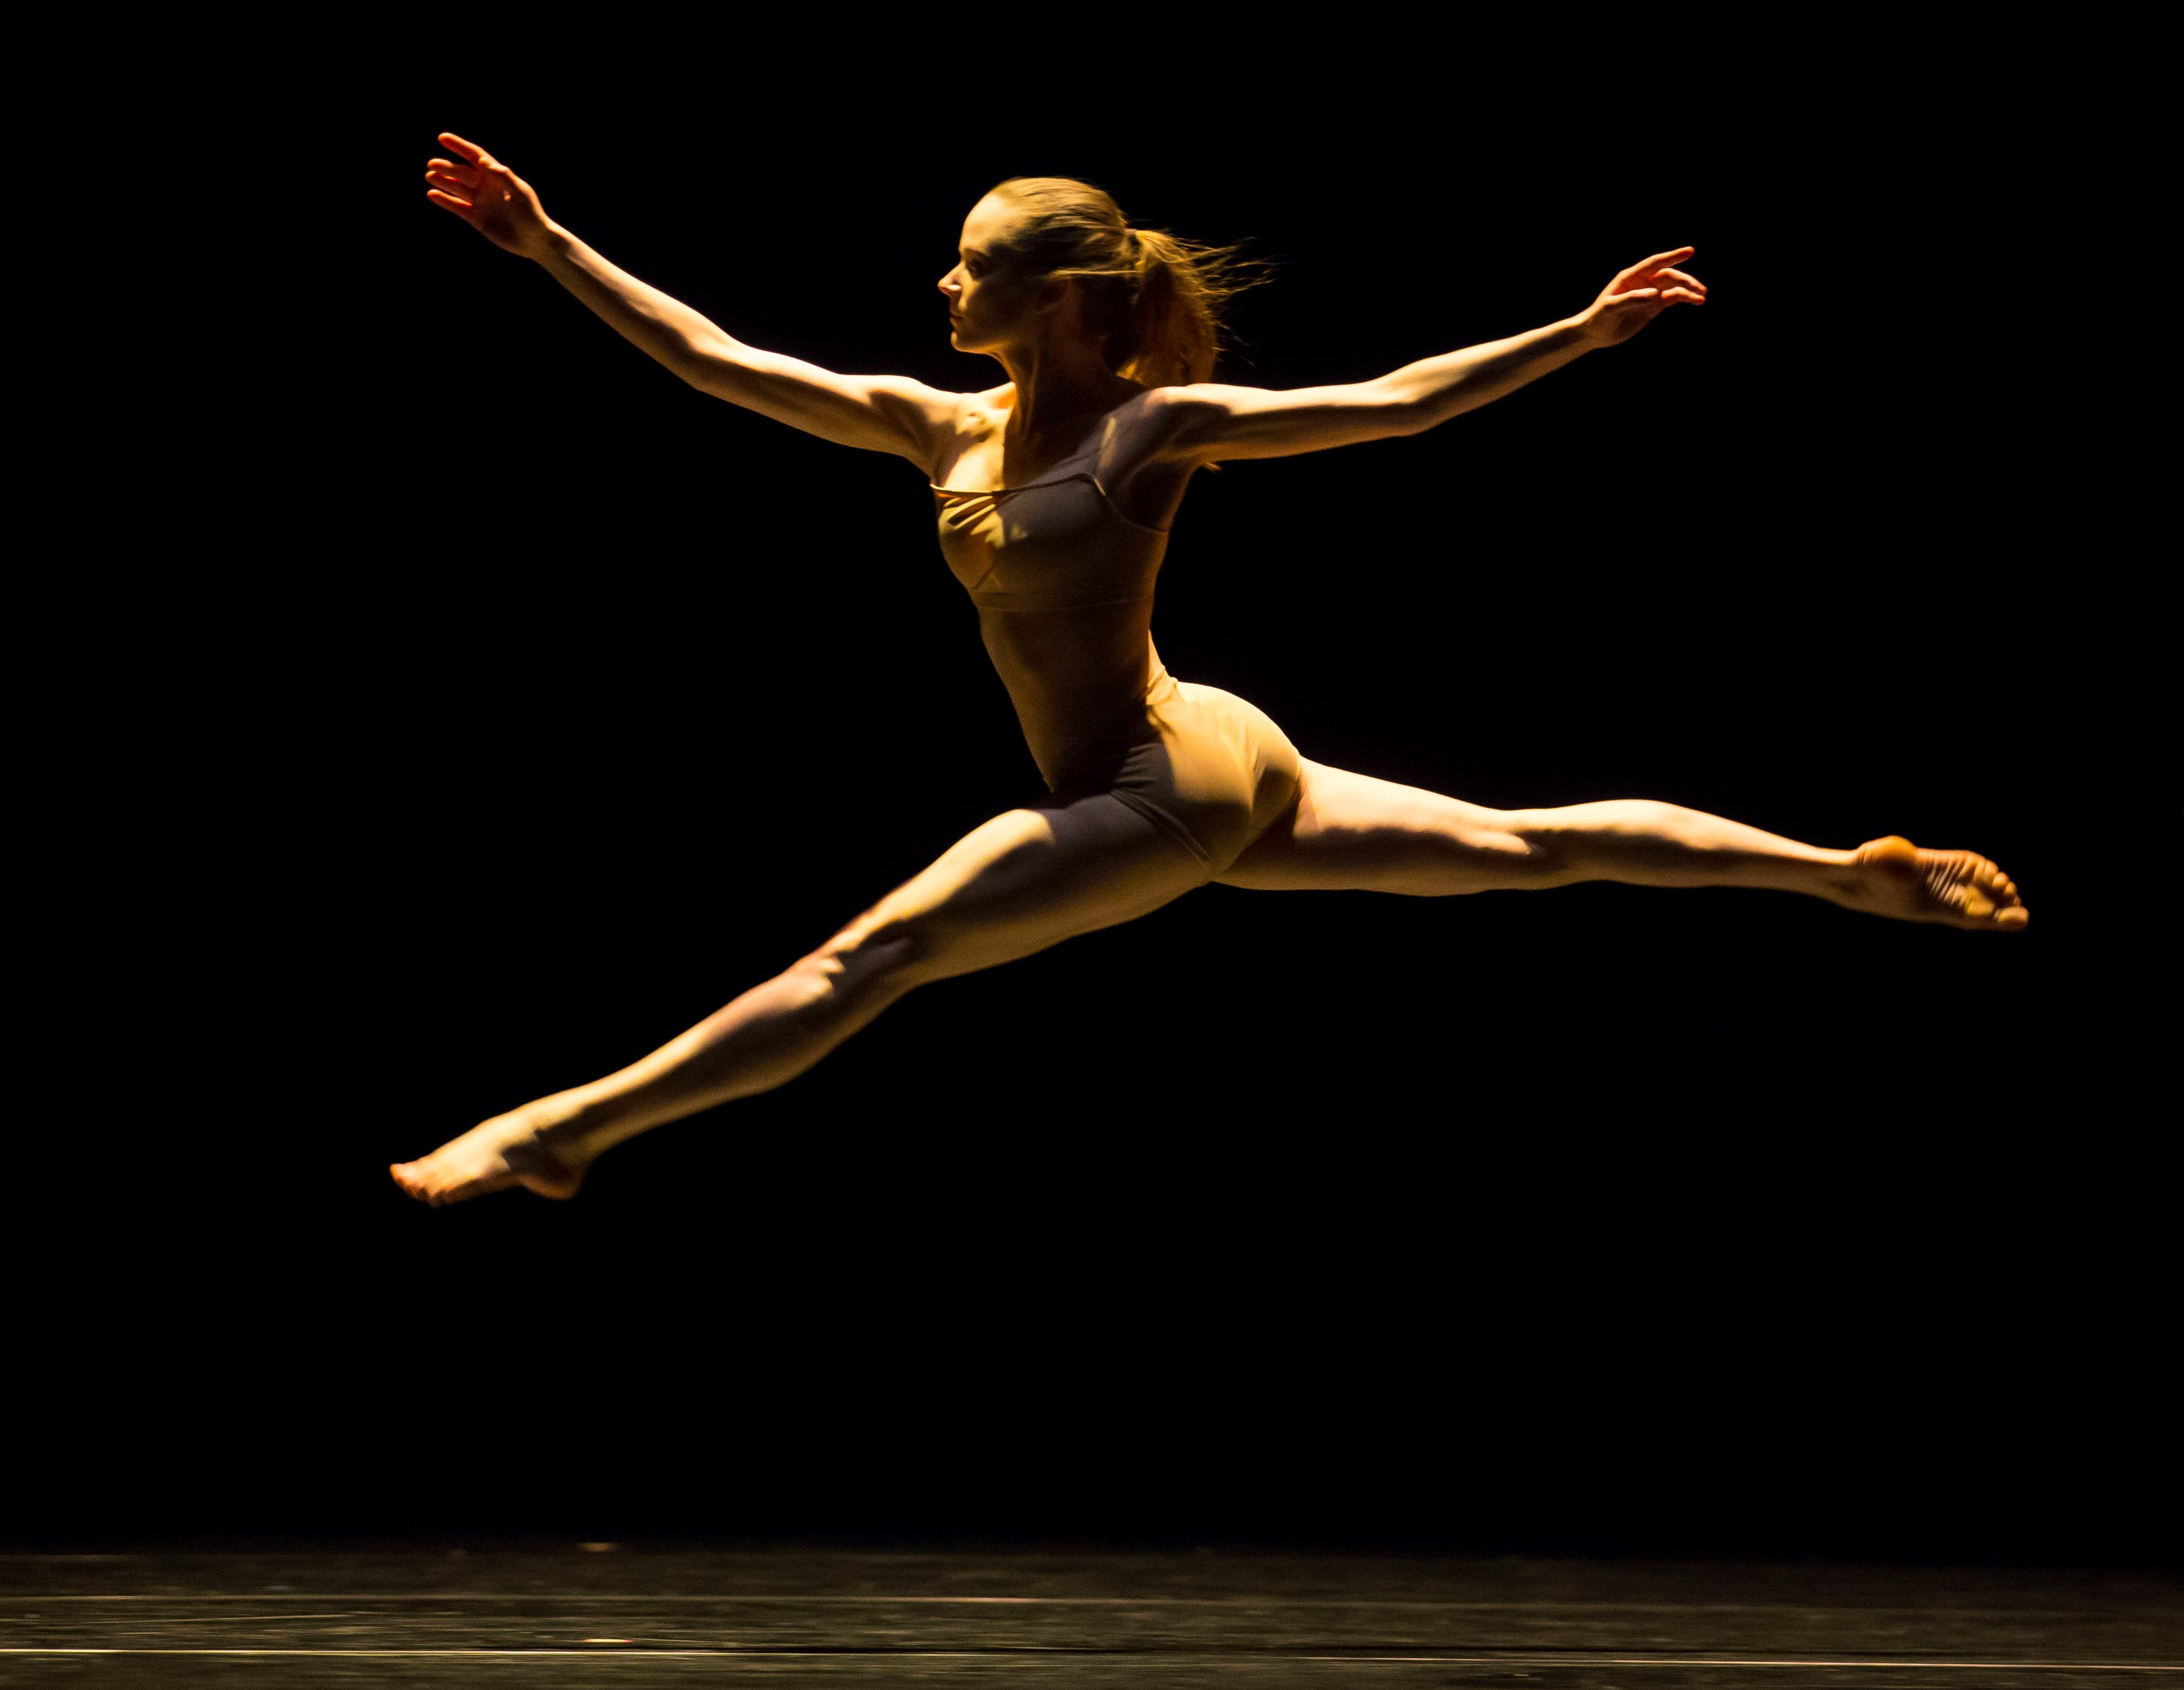 Alice Klock's in Twyla Tharp's The Golden Section